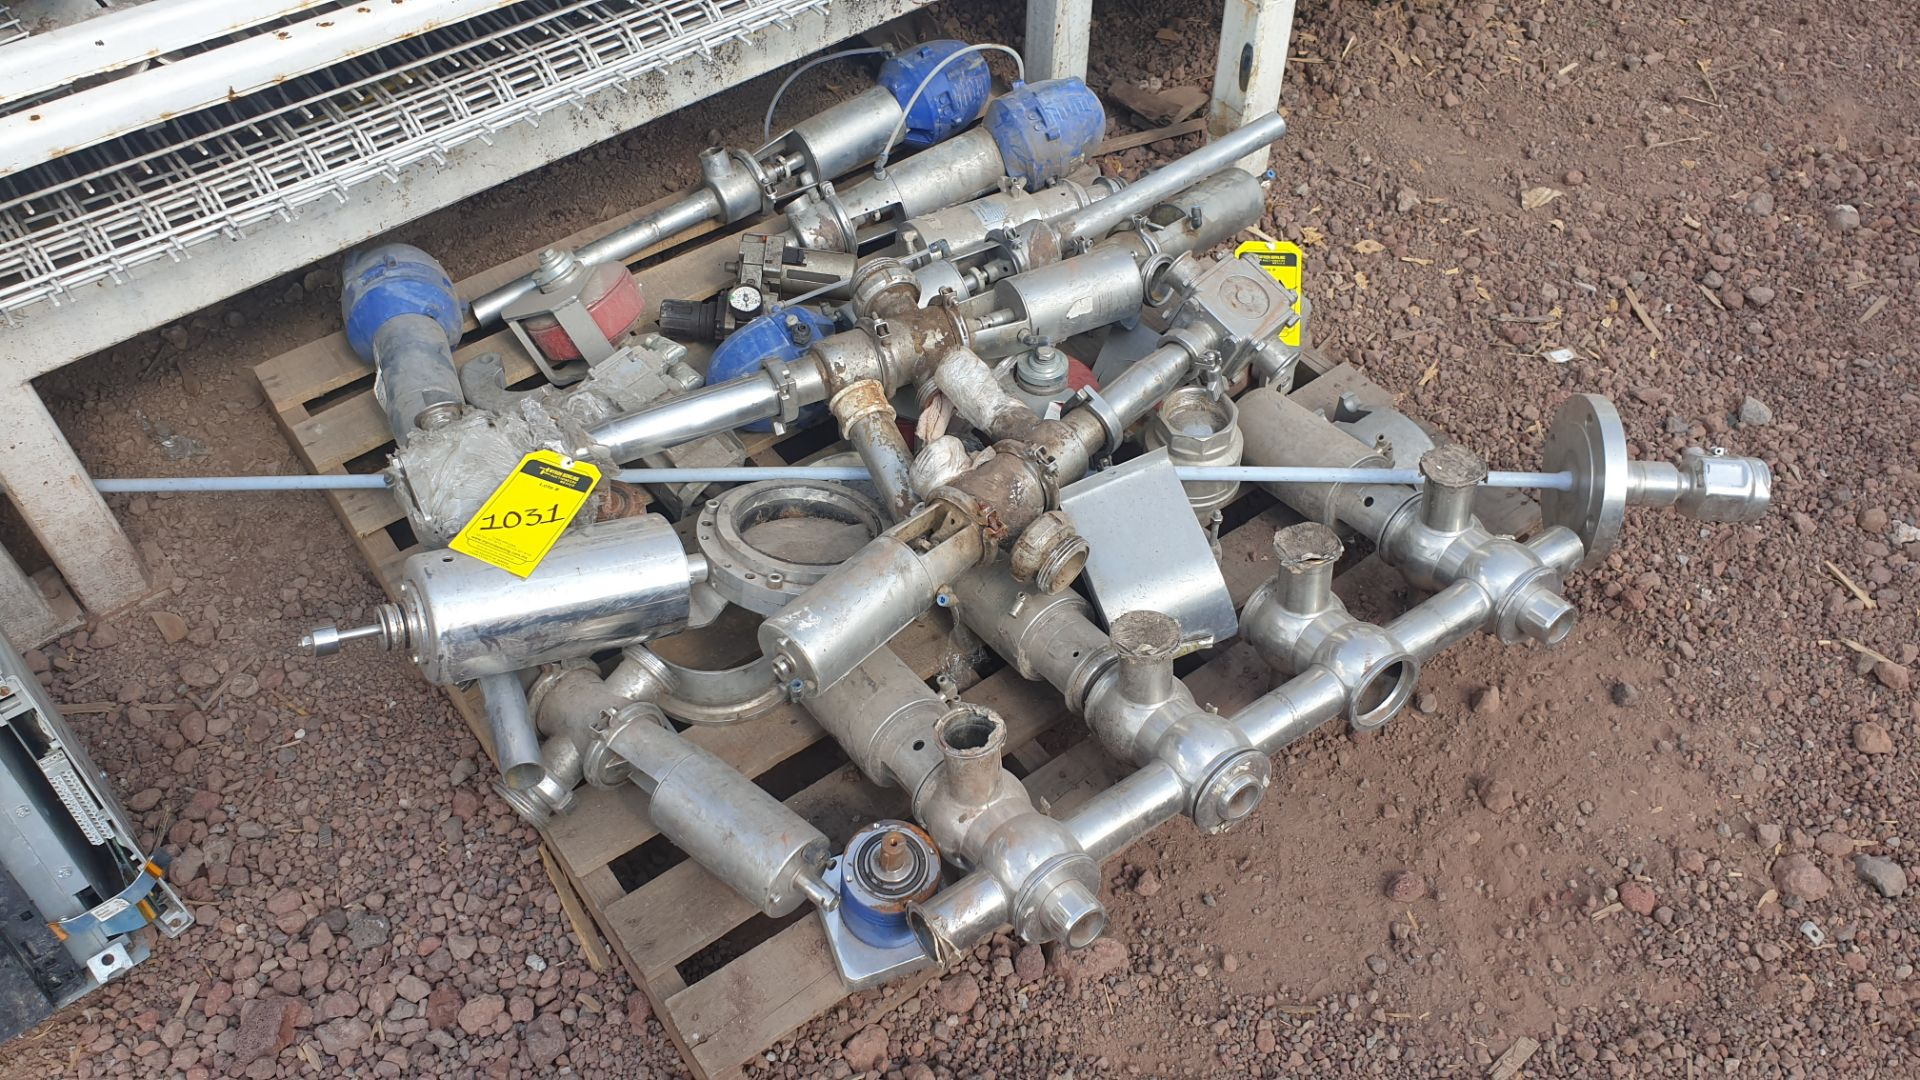 Lot of spare parts, valves, volumetric scales. Please inspect - Image 3 of 8